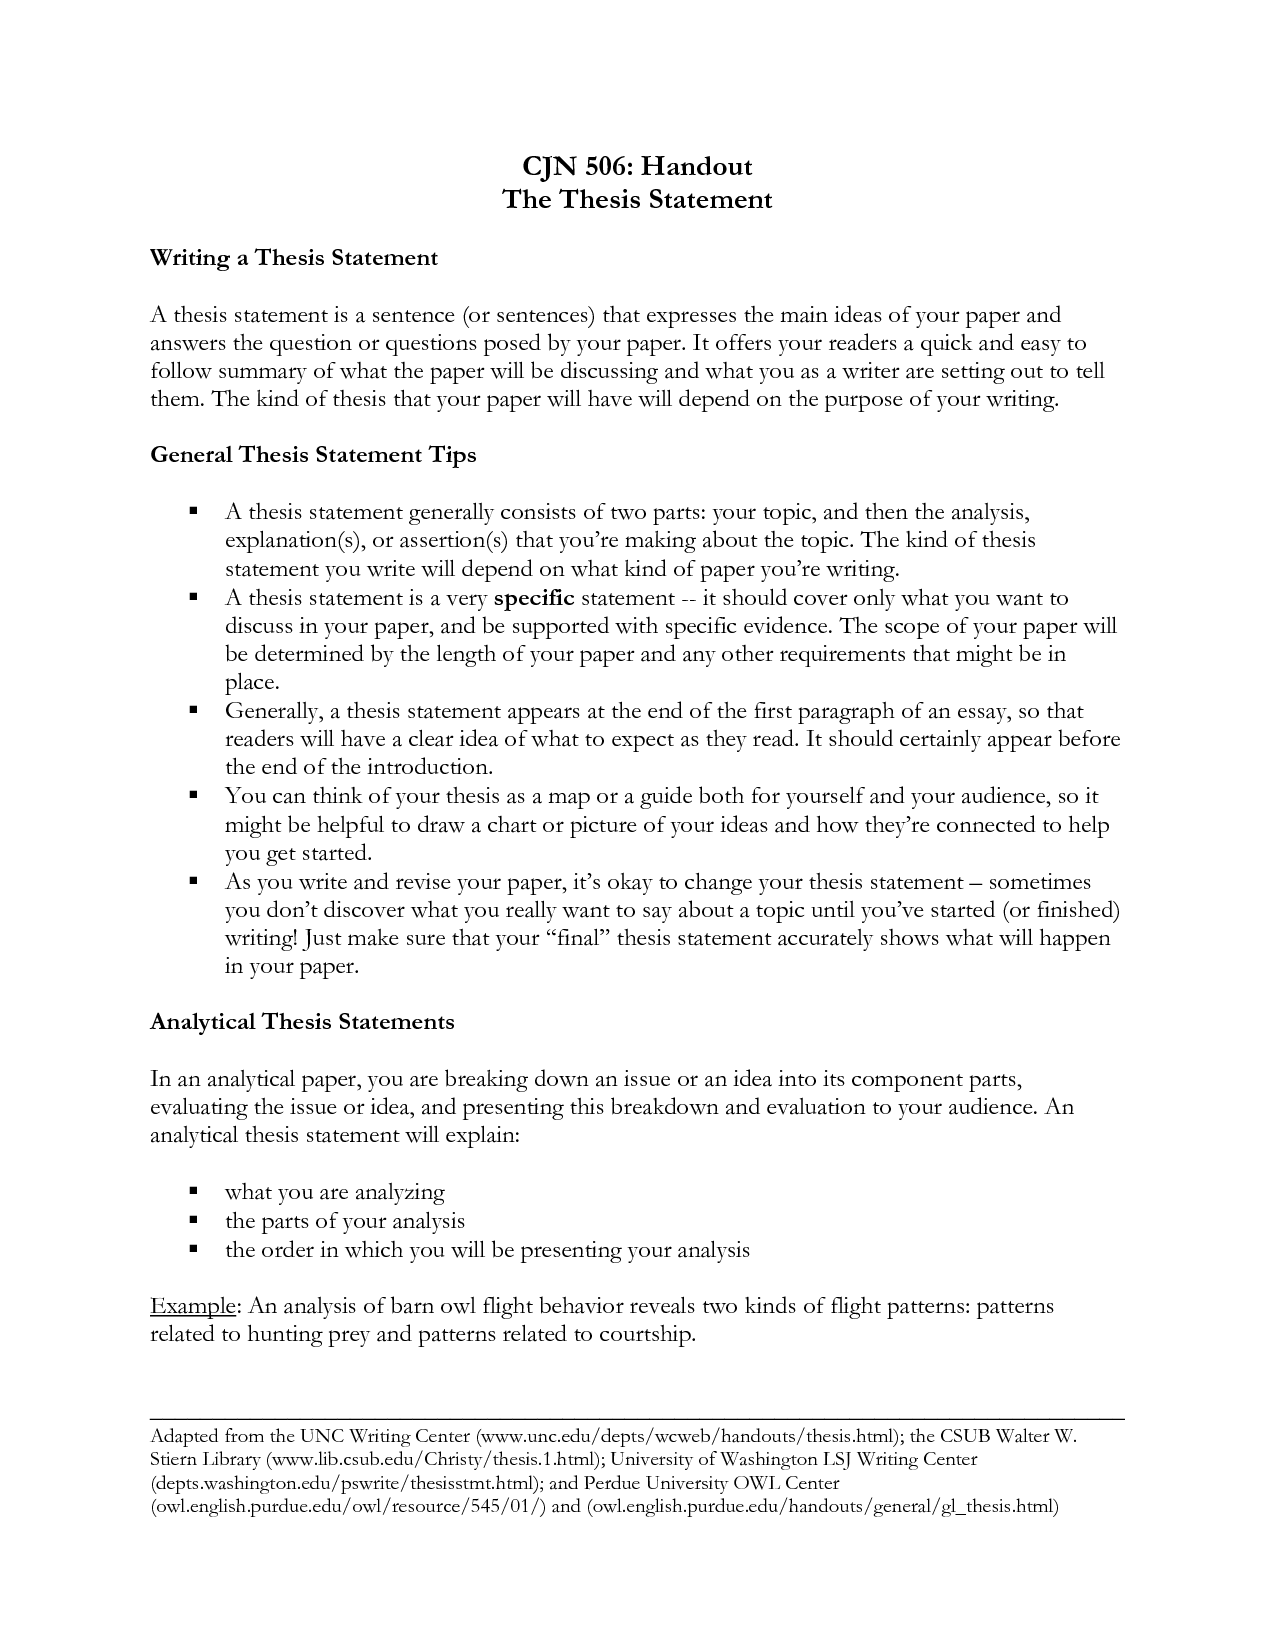 Narrative essay thesis statement examples